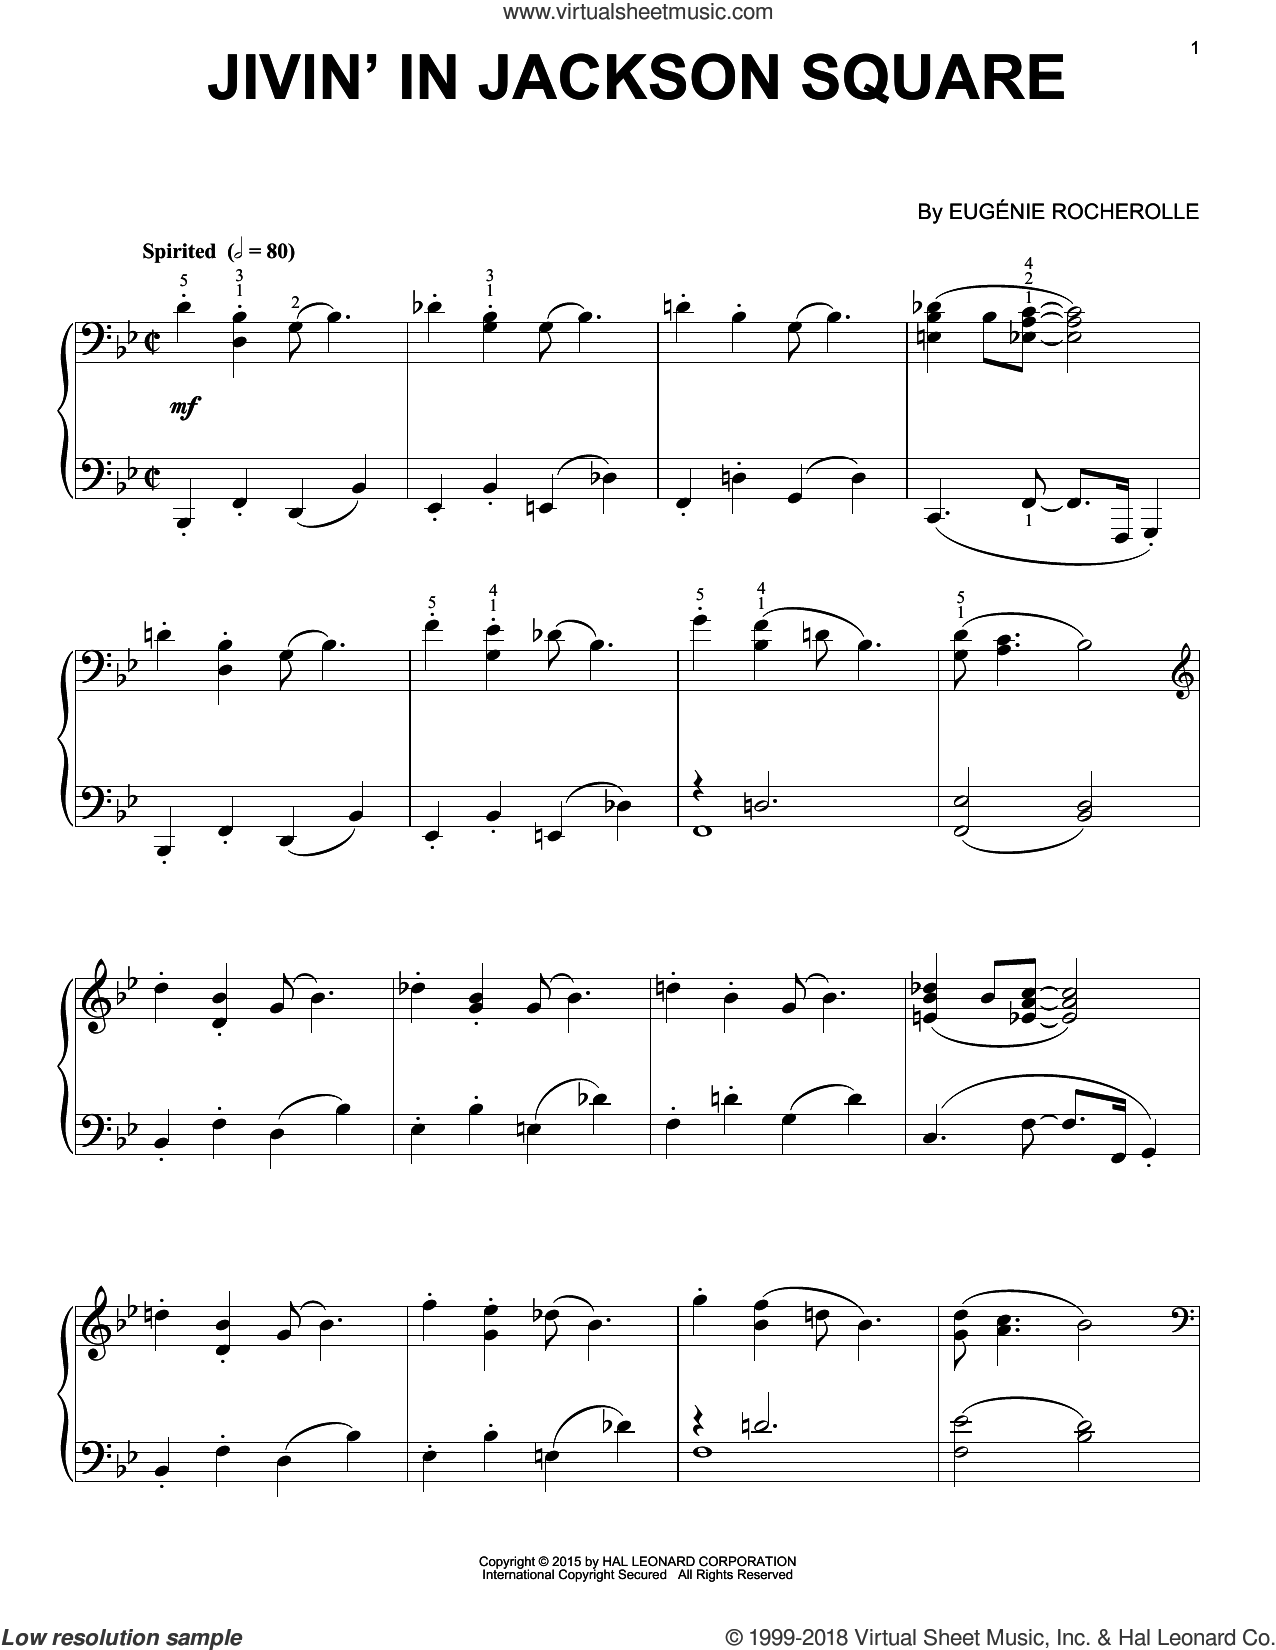 Jivin' In Jackson Square sheet music for piano solo by Eugenie Rocherolle, intermediate skill level